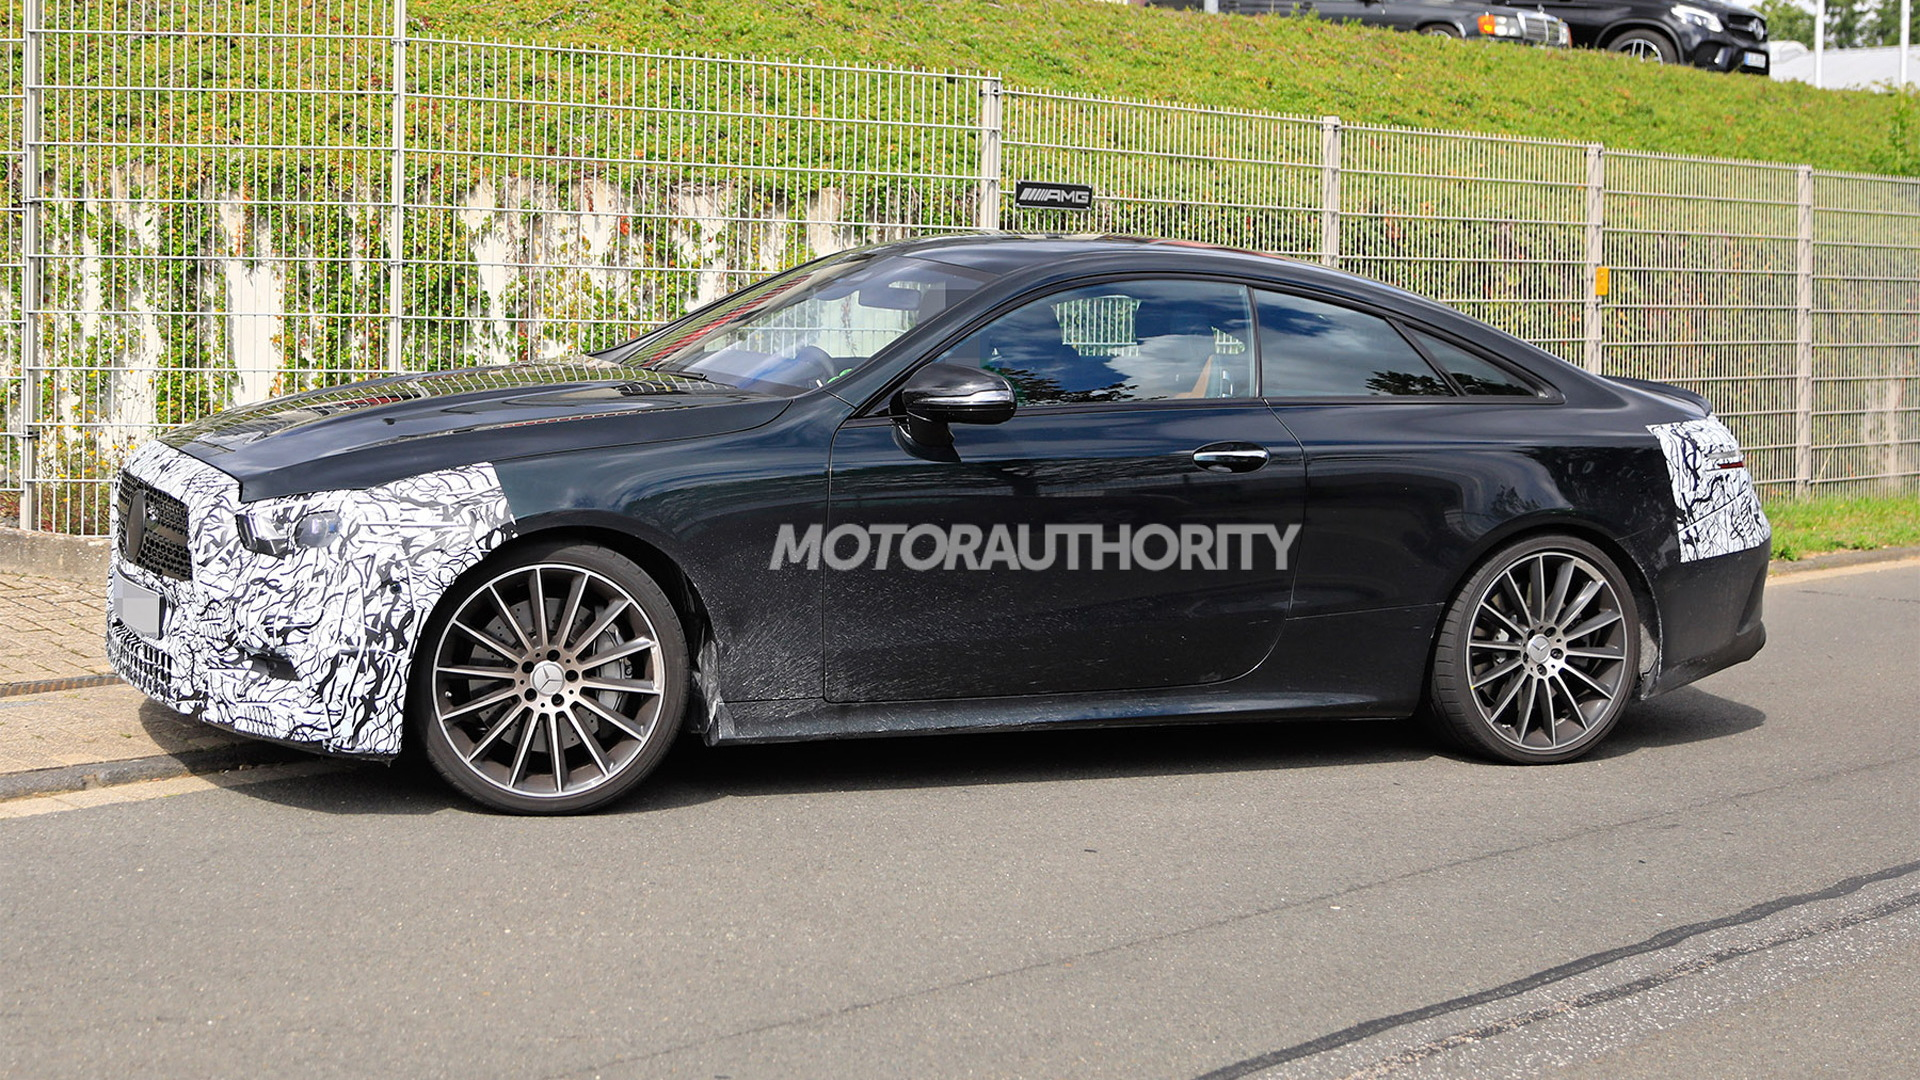 2021 Mercedes-AMG E53 Coupe facelift spy shots - Photo credit: S. Baldauf/SB-Medien